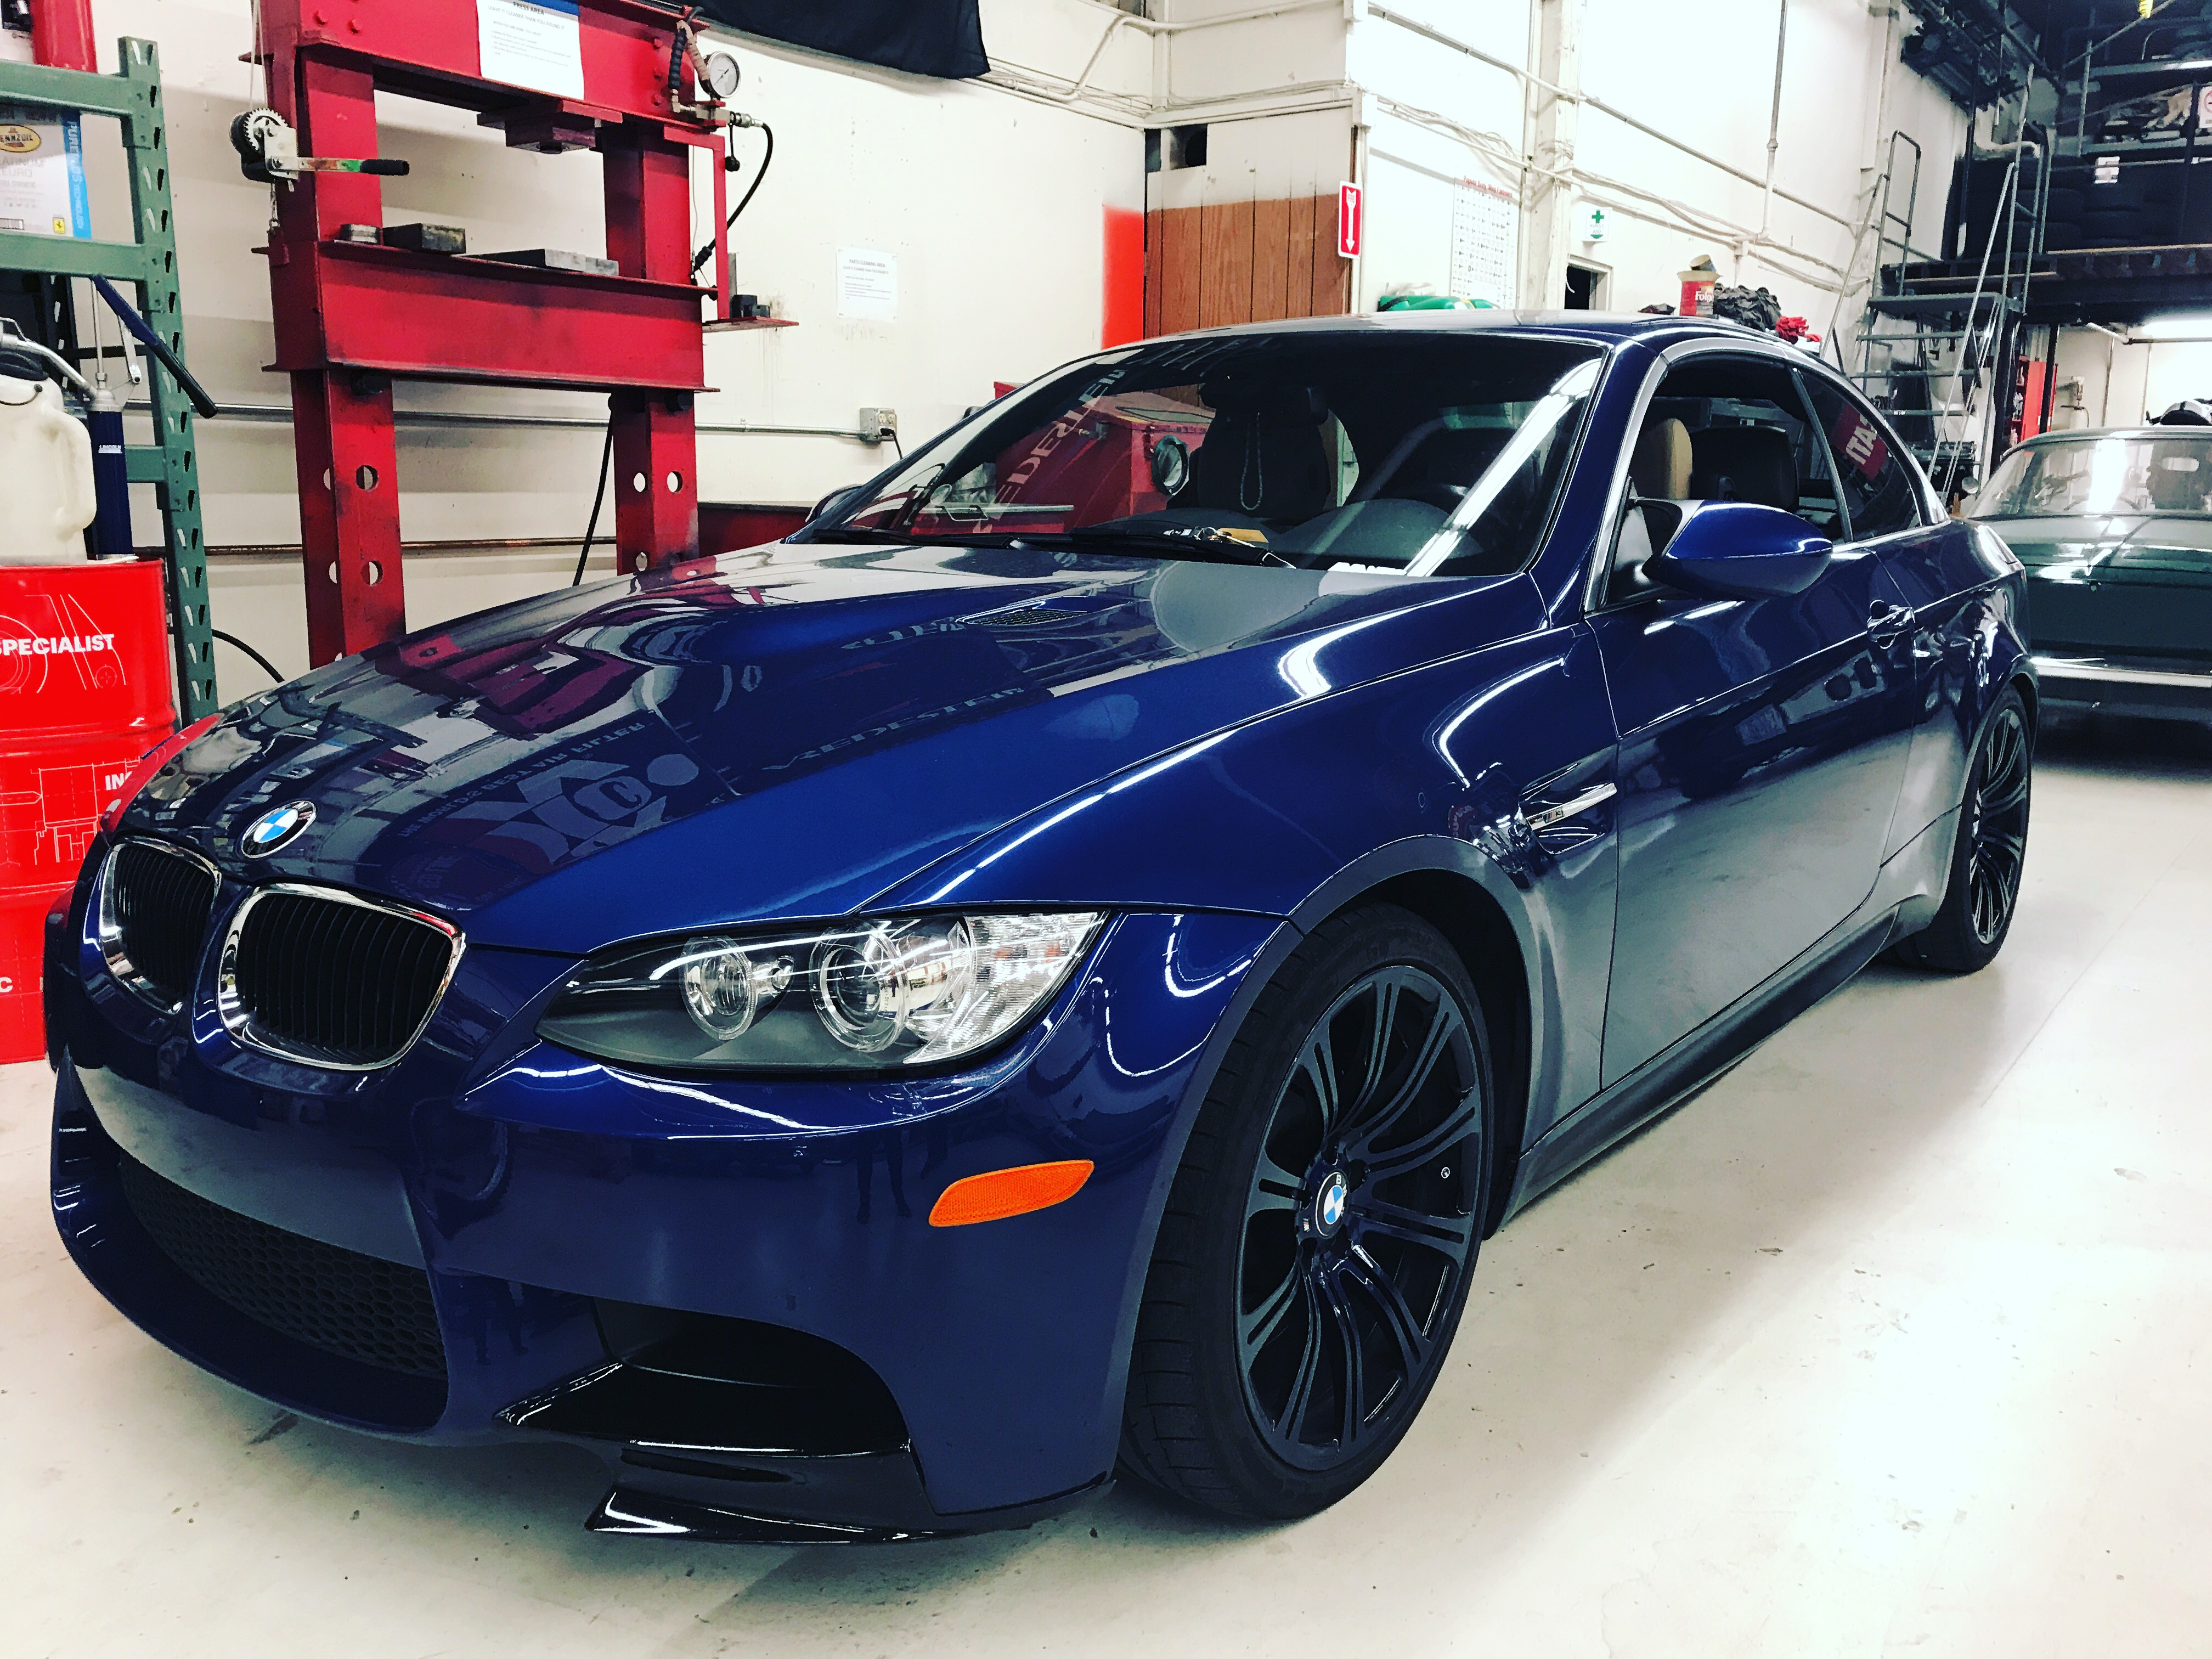 under near to used img buying save social when how dealership car a bmw wojdylo me